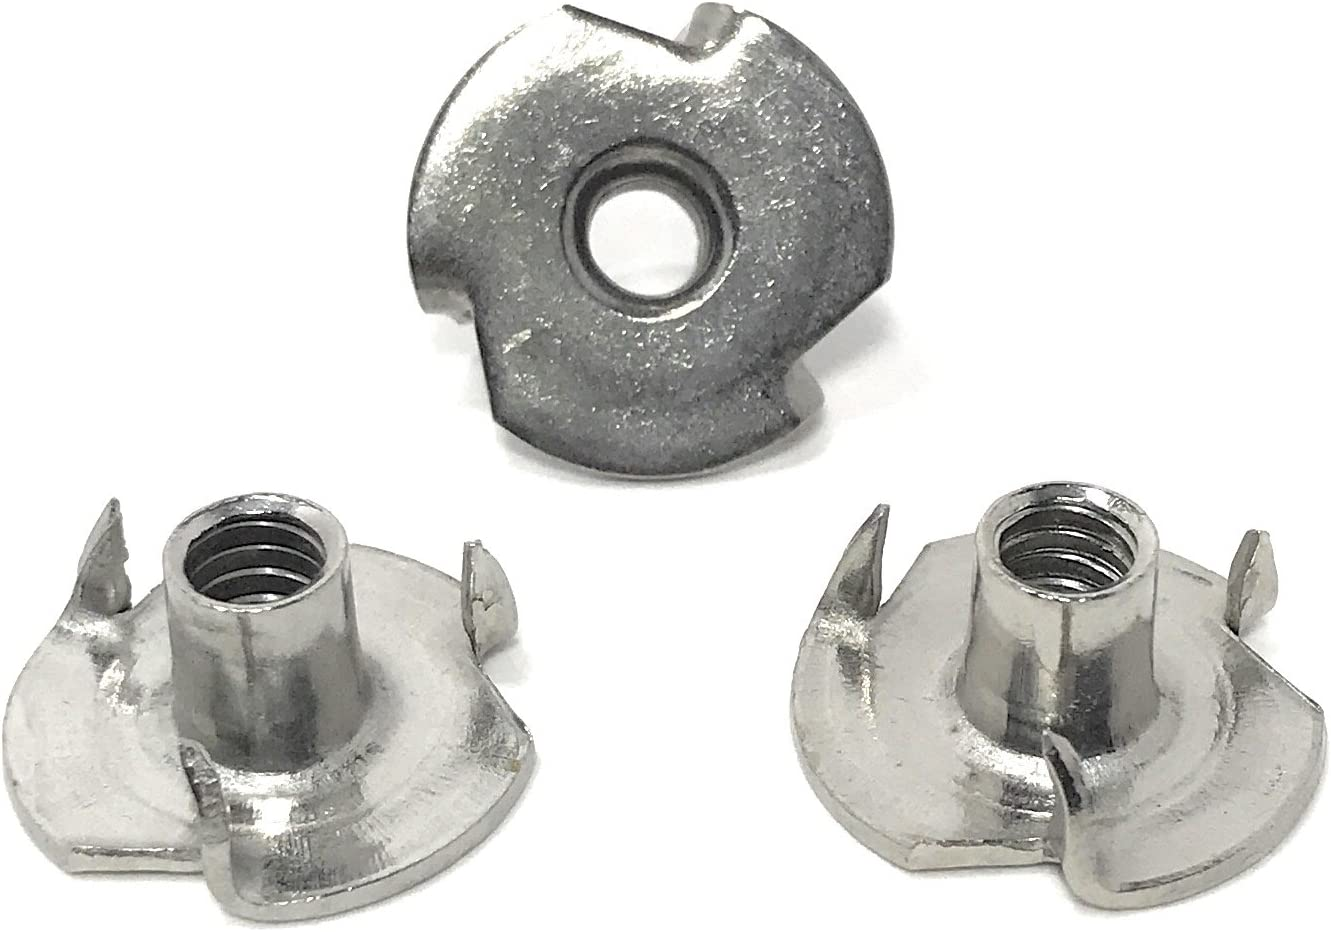 T-NUT Stainless Steel Max 58% OFF 10-24x9 32 3 Luxury goods Nuts Tee Threa Prong 10-24